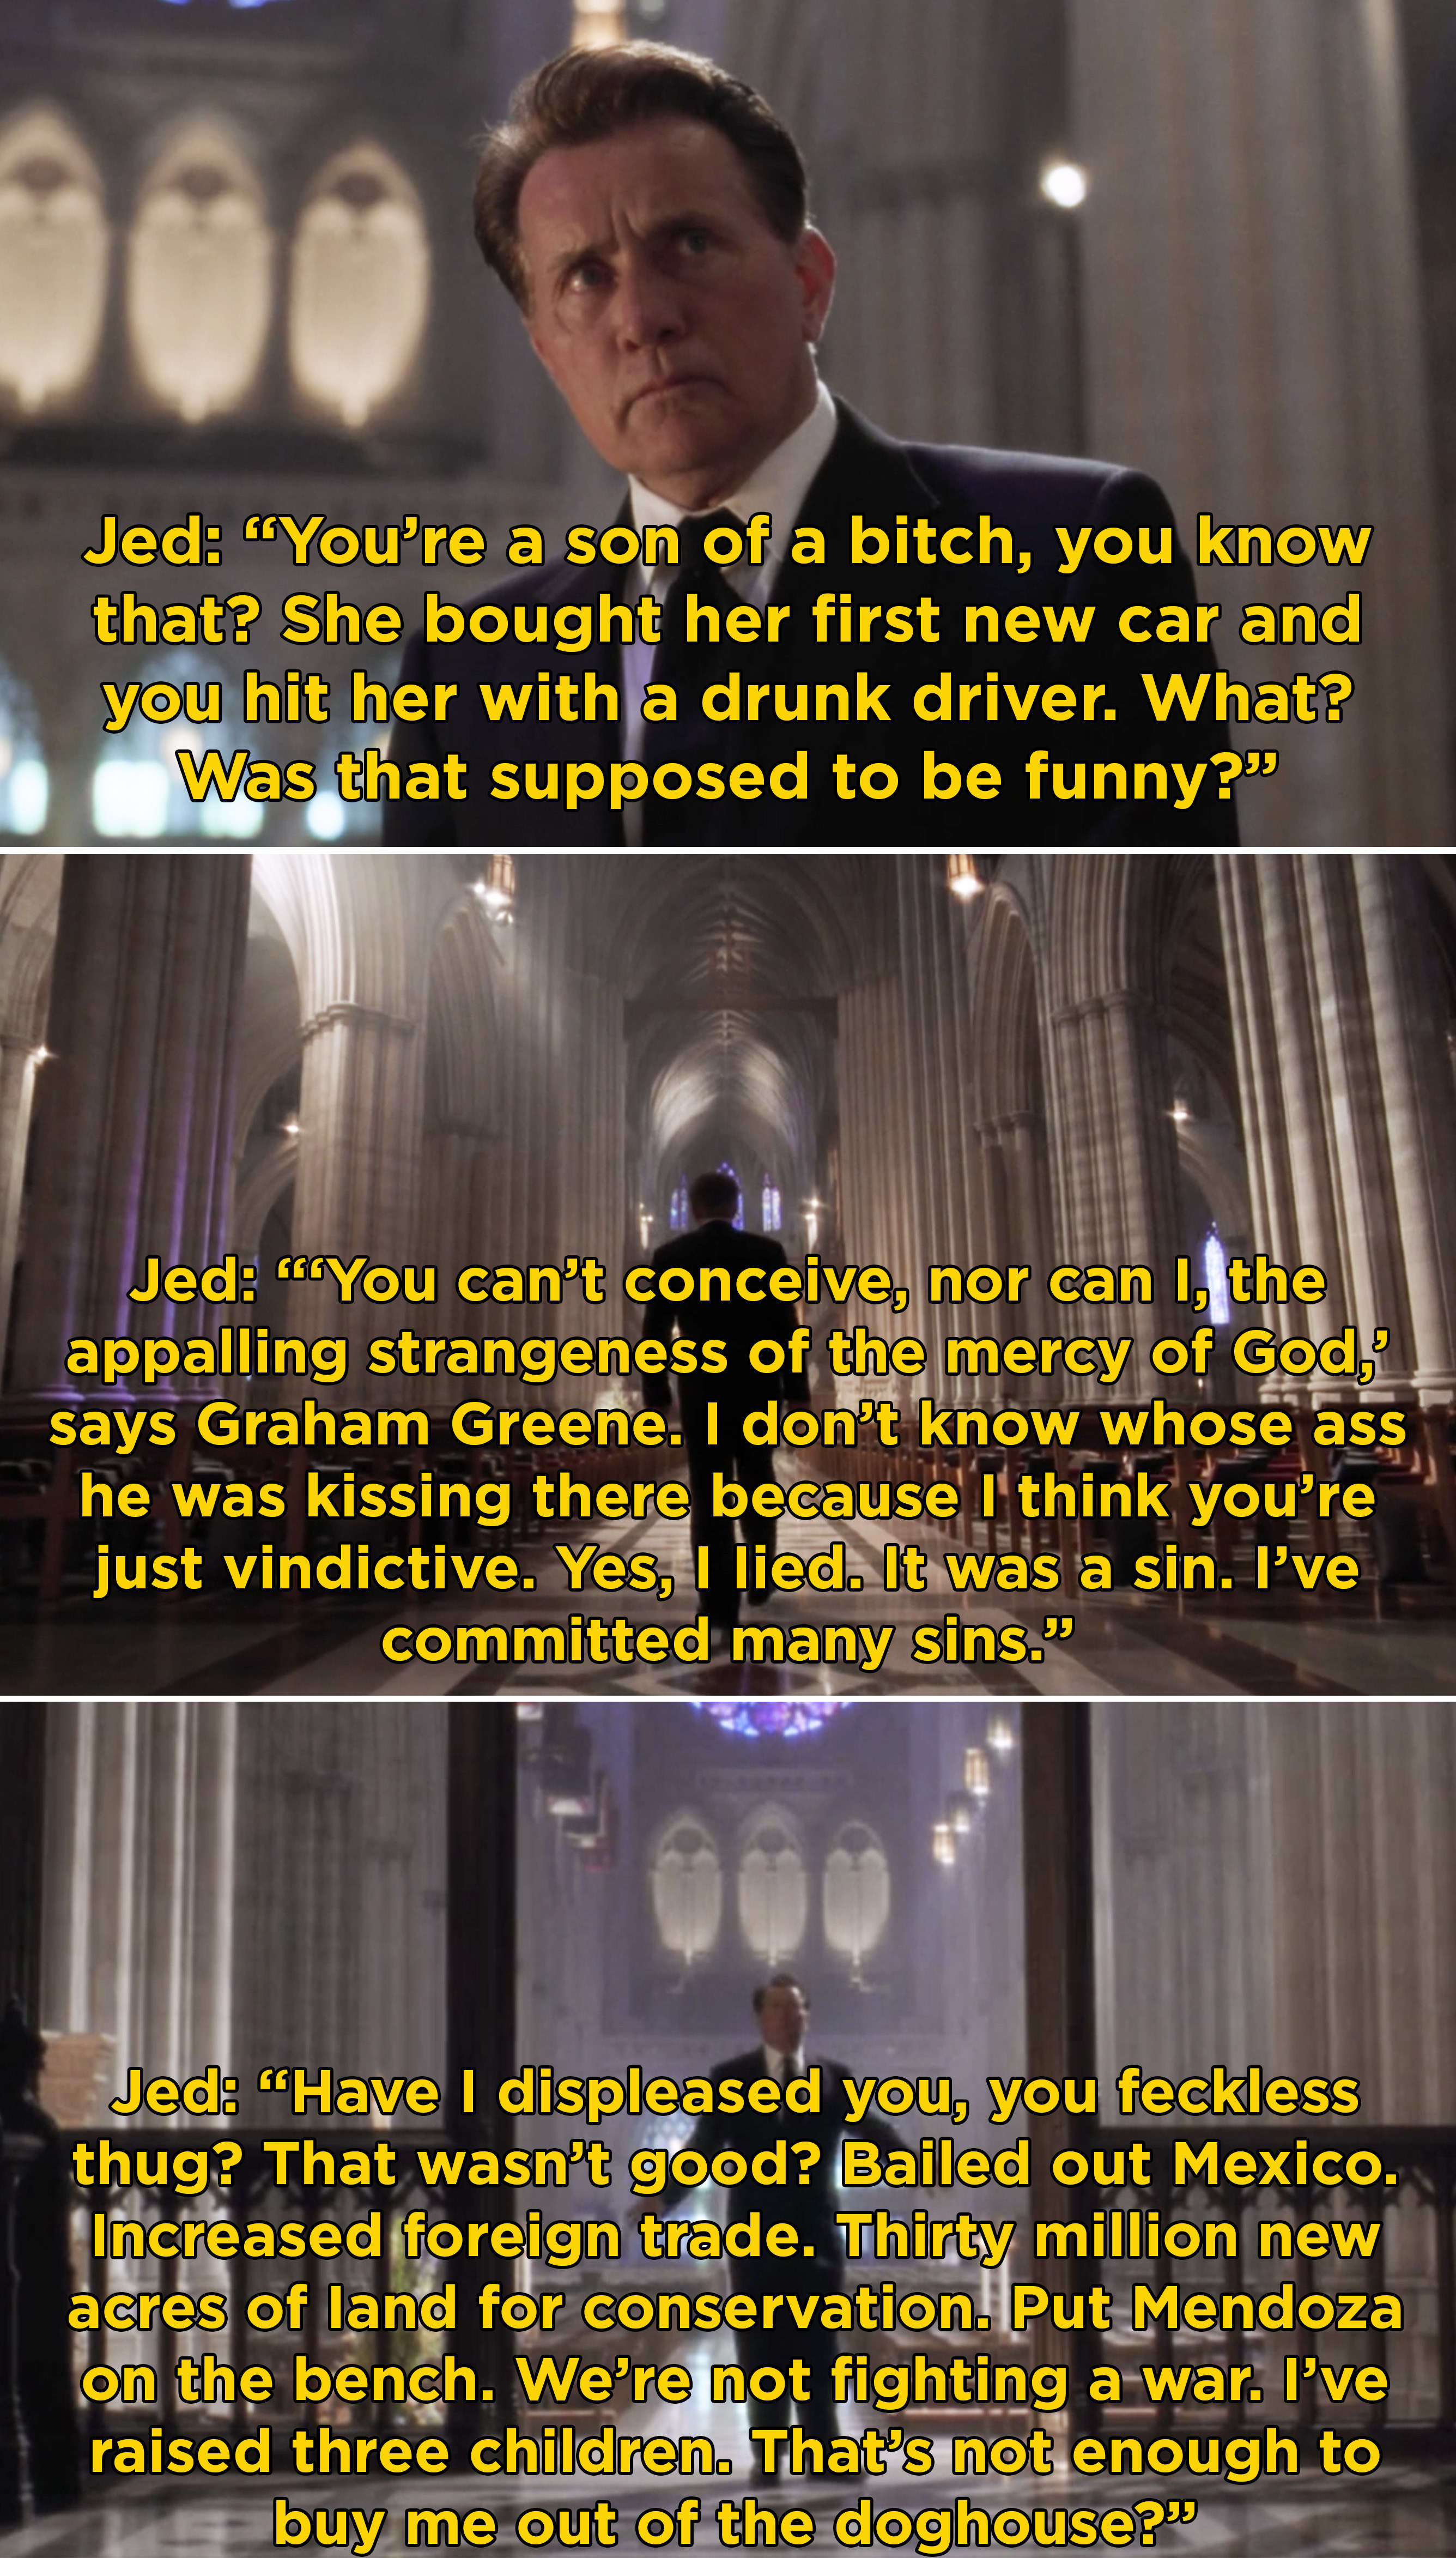 Jed in the cathedral talking to God about how it's unfair Mrs. Landingham died and what more can he possibly do to be on God's good side